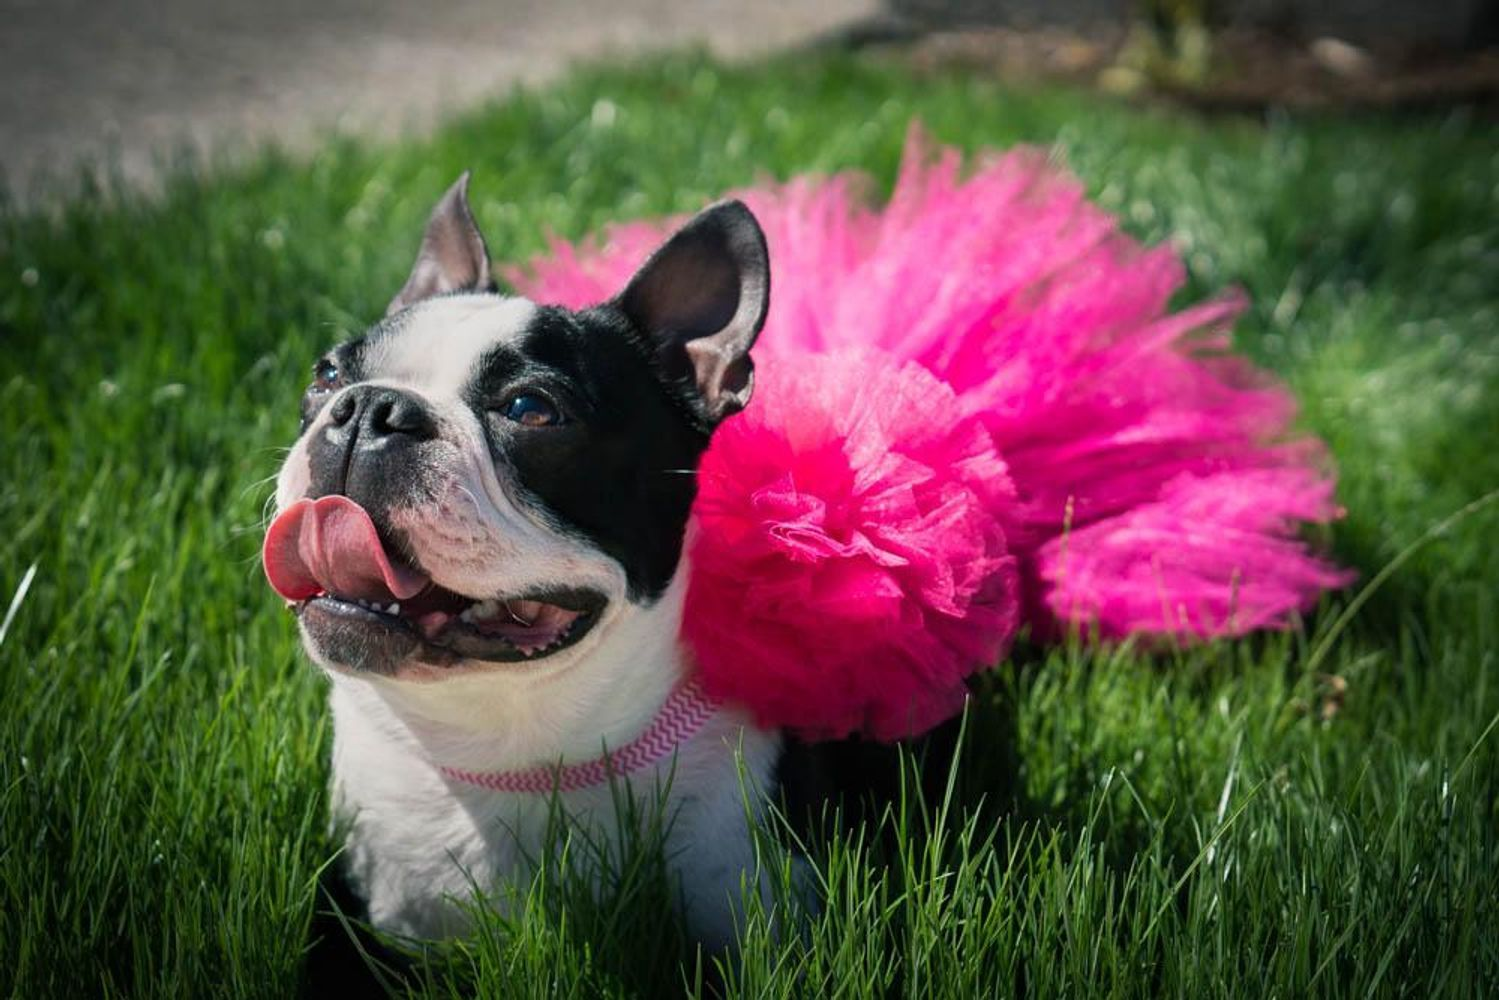 Buy Hot Pink Dog Tutu Skirt | XS-XXXL from Walking Pants Curiosities, the Most un-General Gift Store in Downtown Memphis, Tennessee!